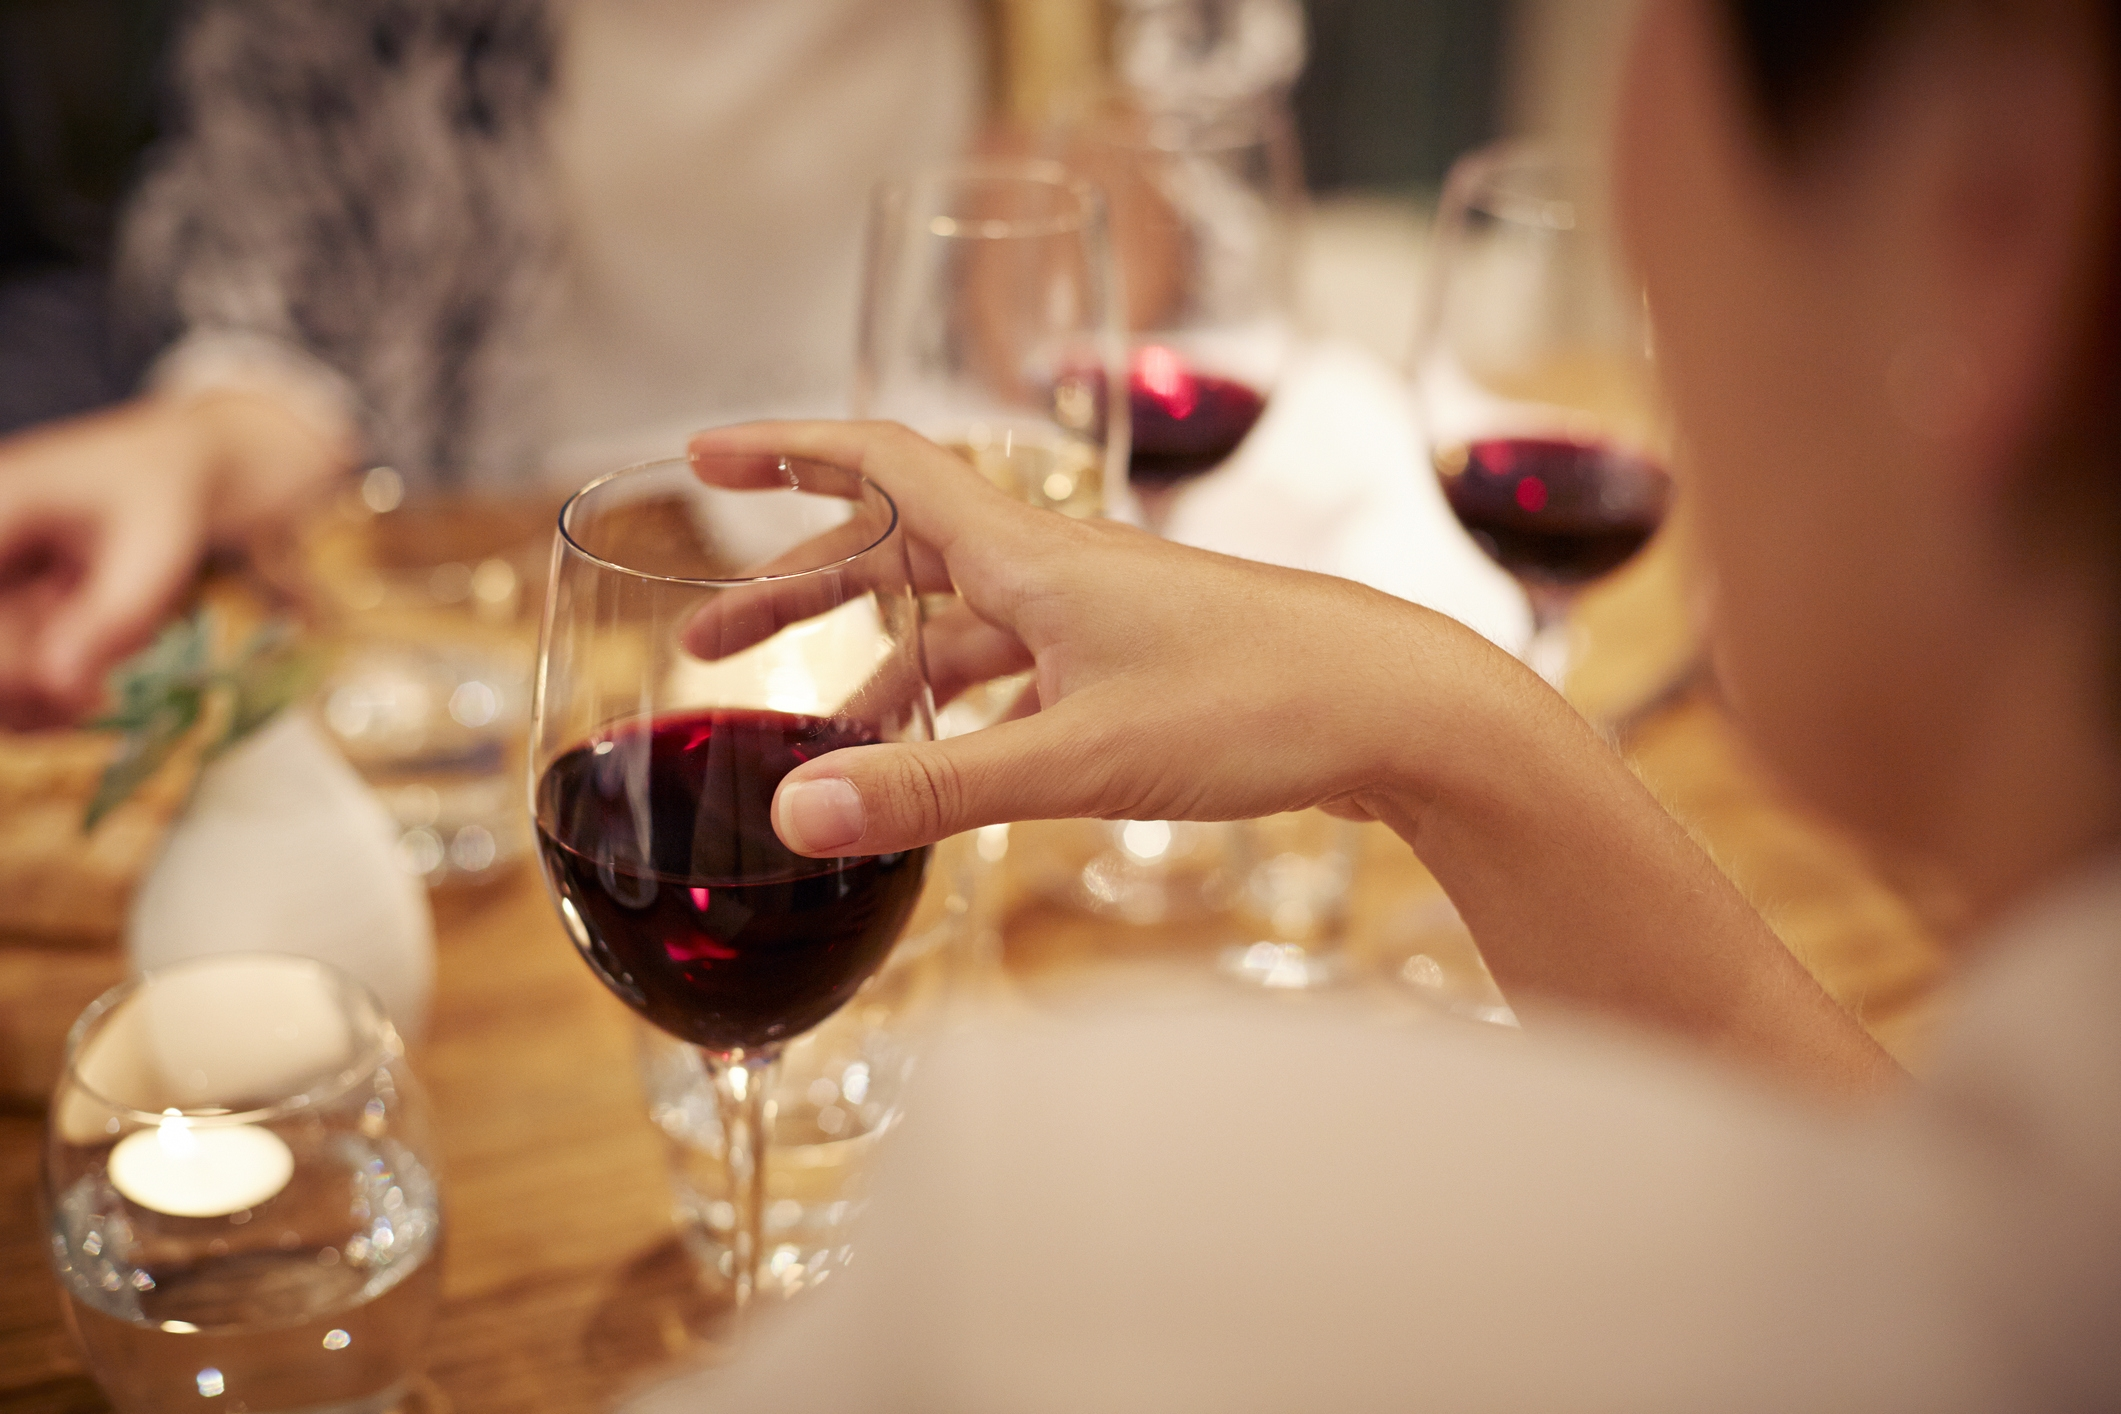 HOW TO get FREE WINE at restaurants!!!